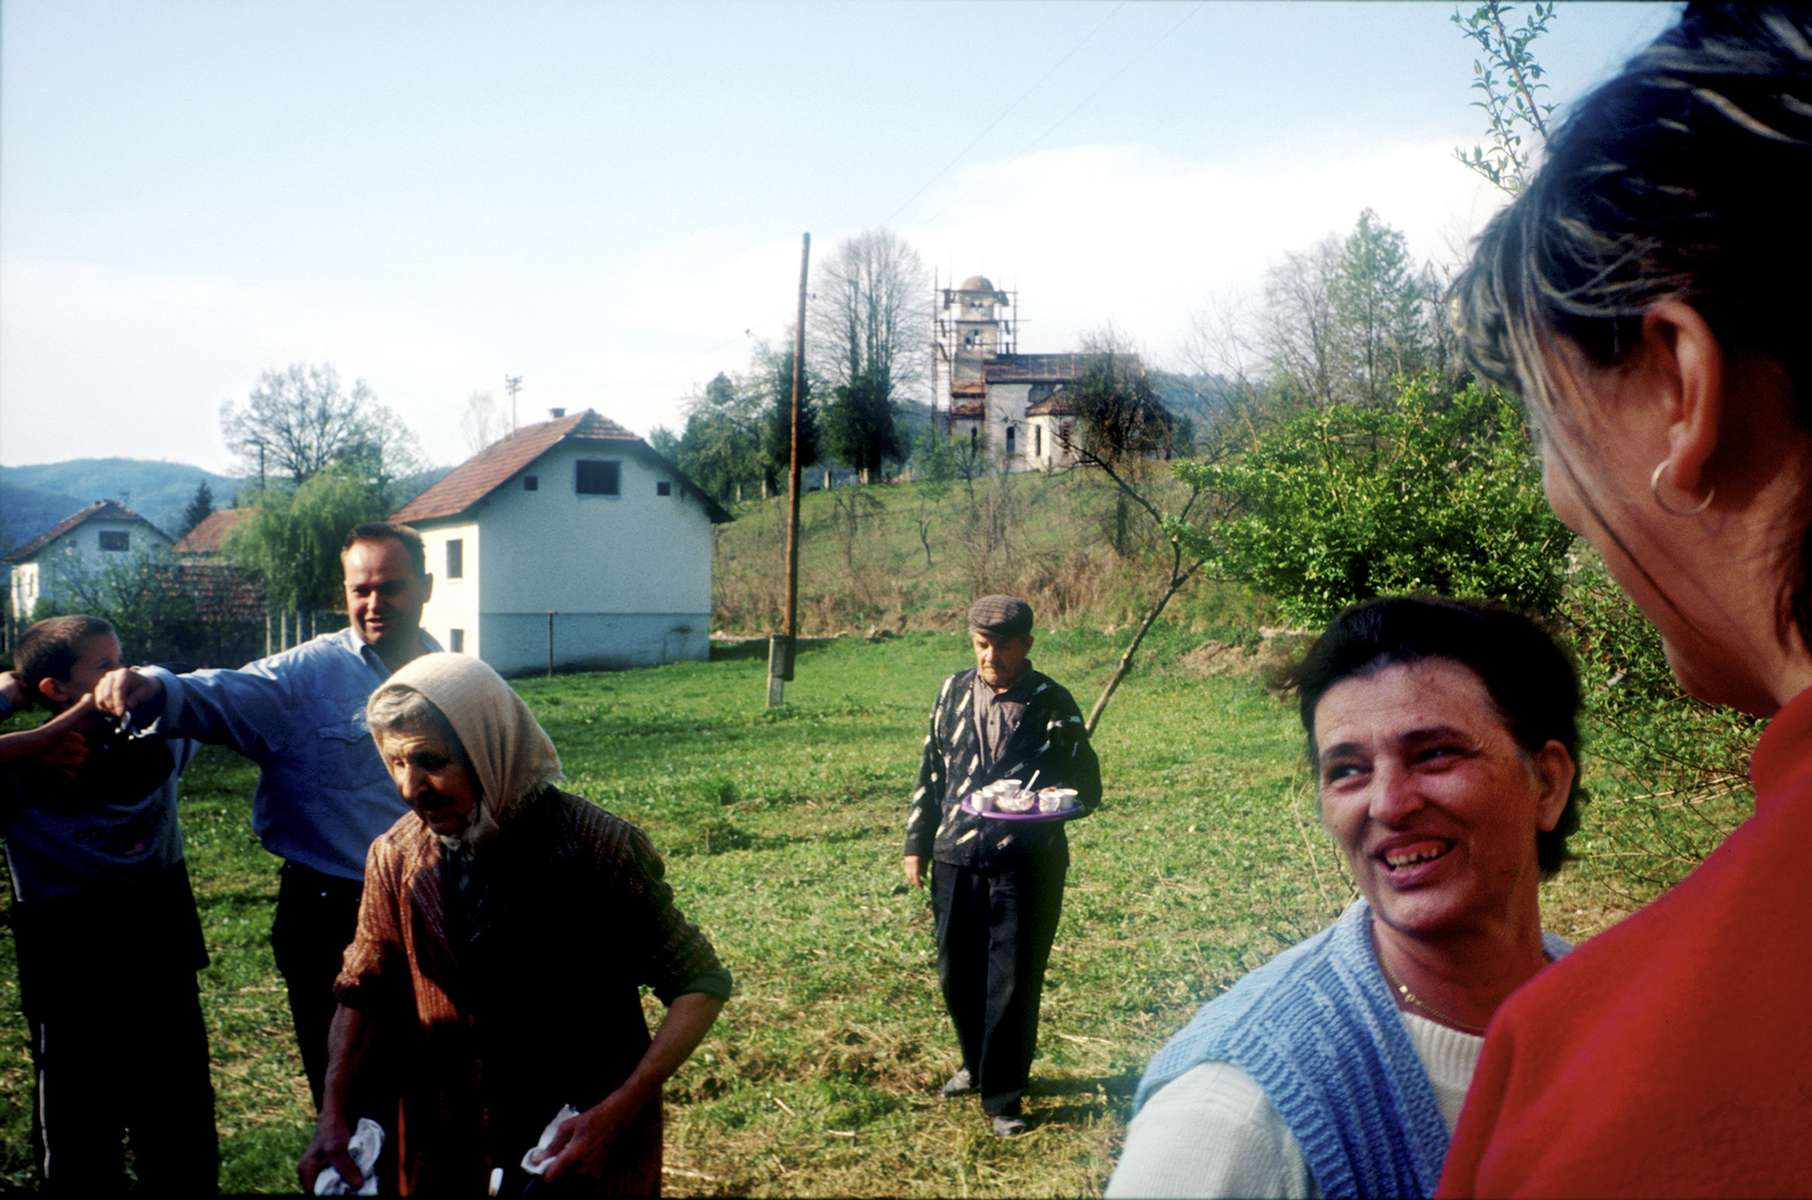 Serb families gather for coffee in the village of Bocinja. Although Serbs lived in the village throughout the war, they fled once the cease fire was signed in the fall of 1994. Several Islamic mujahideen, who had come from Arab countries to fight during the war, moved in to the village and refused to leave when Serb owners wanted to return. International and Bosnian officials finally intervened and removed the mujahideen. As they left, the mujahideen damaged several houses, as well as the Orthodox church in the background, which was being repaired at the time the photo was taken.